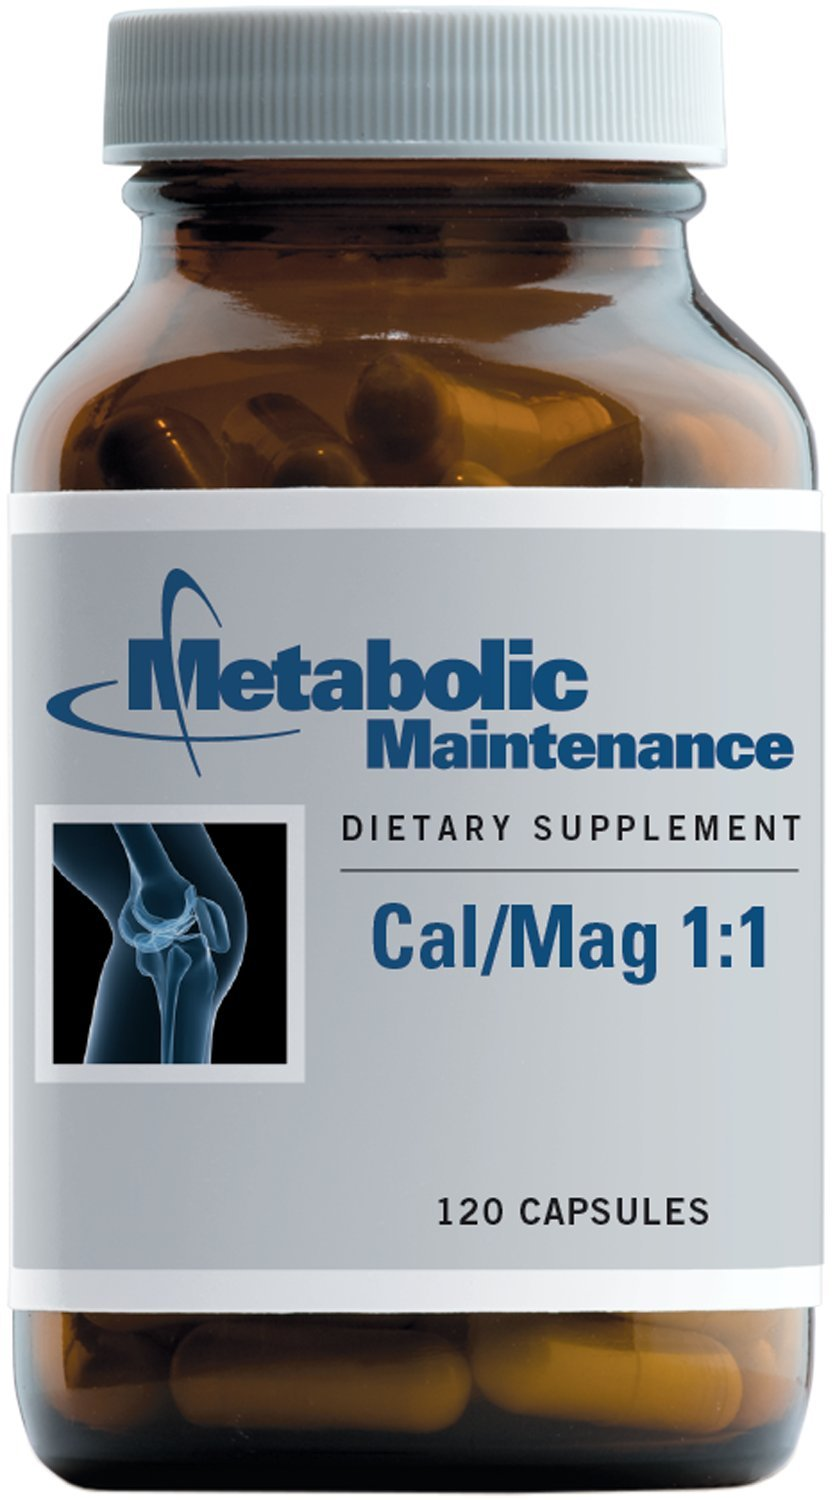 Metabolic Maintenance - Cal/Mag 1:1 - Bioavailable Bone + Heart Support, 120 Capsules